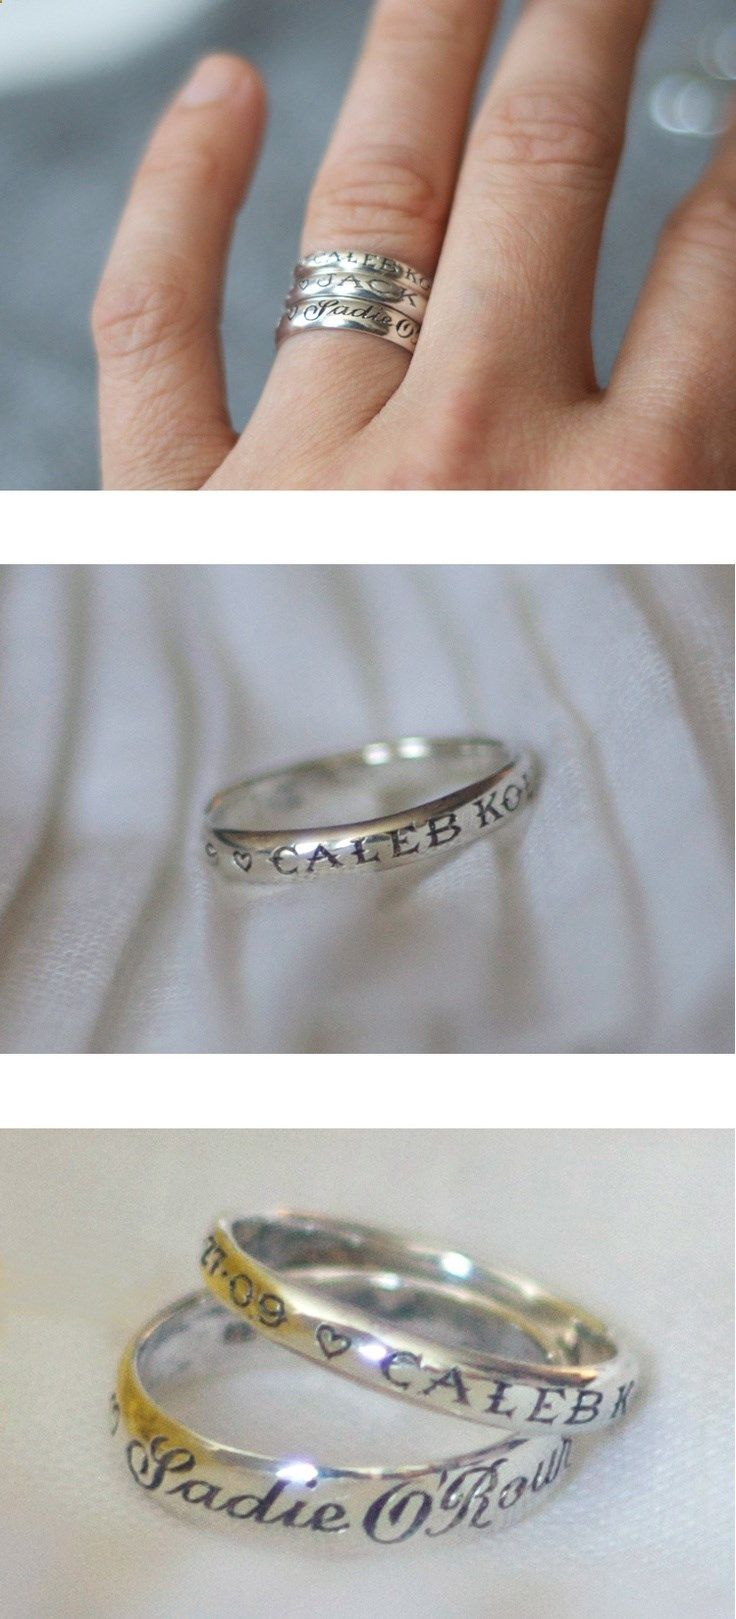 Childs name and date of birth on a ring.......NEED!?!!!!! :))